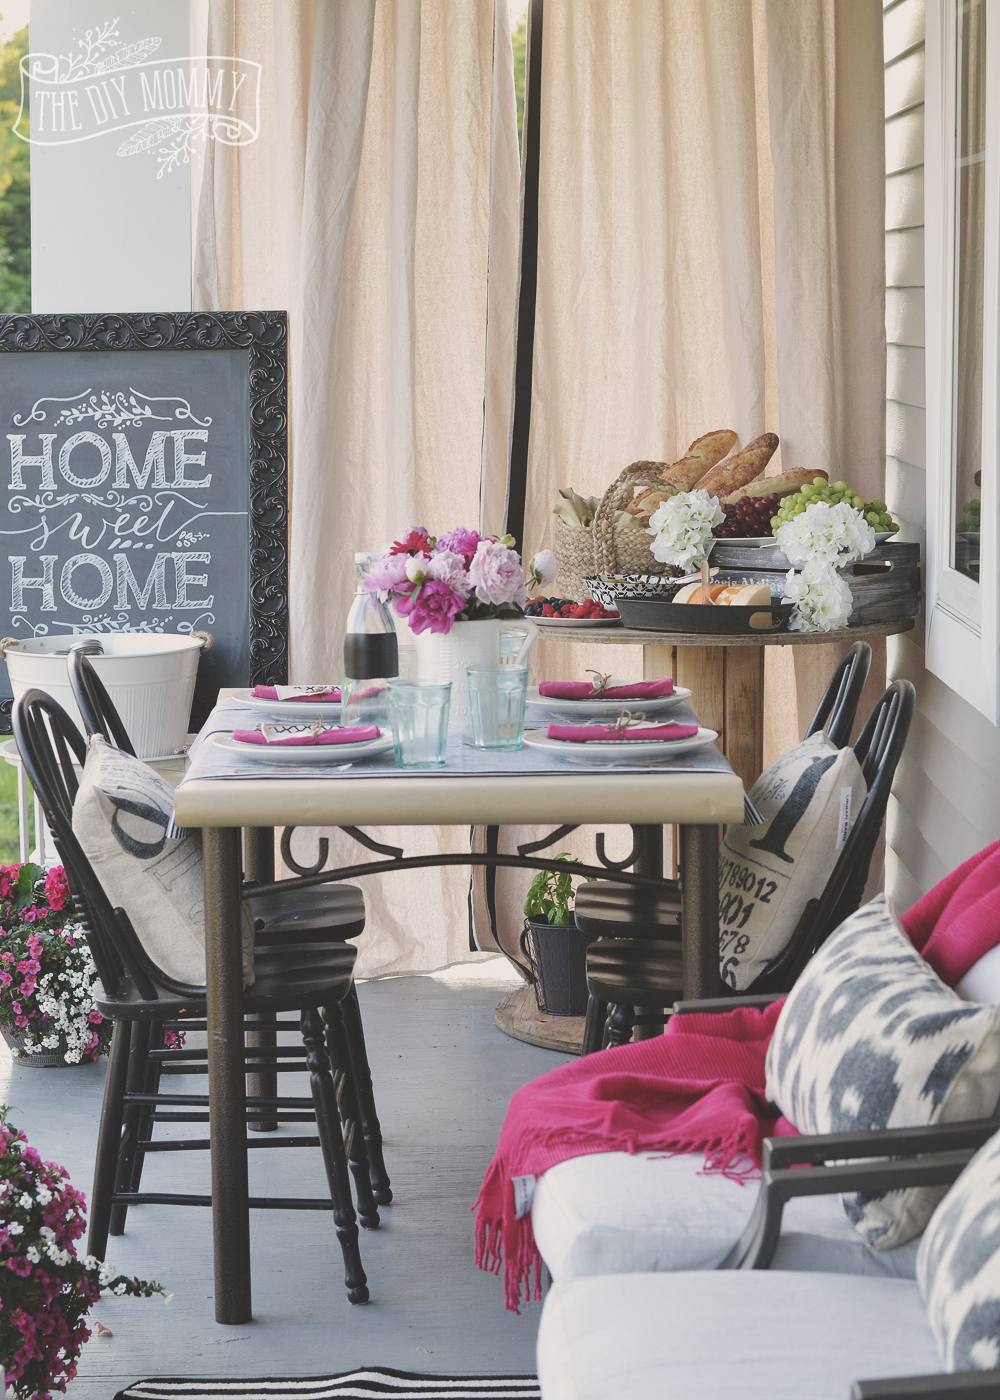 French market inspired porch warming party idea in black, white and pink